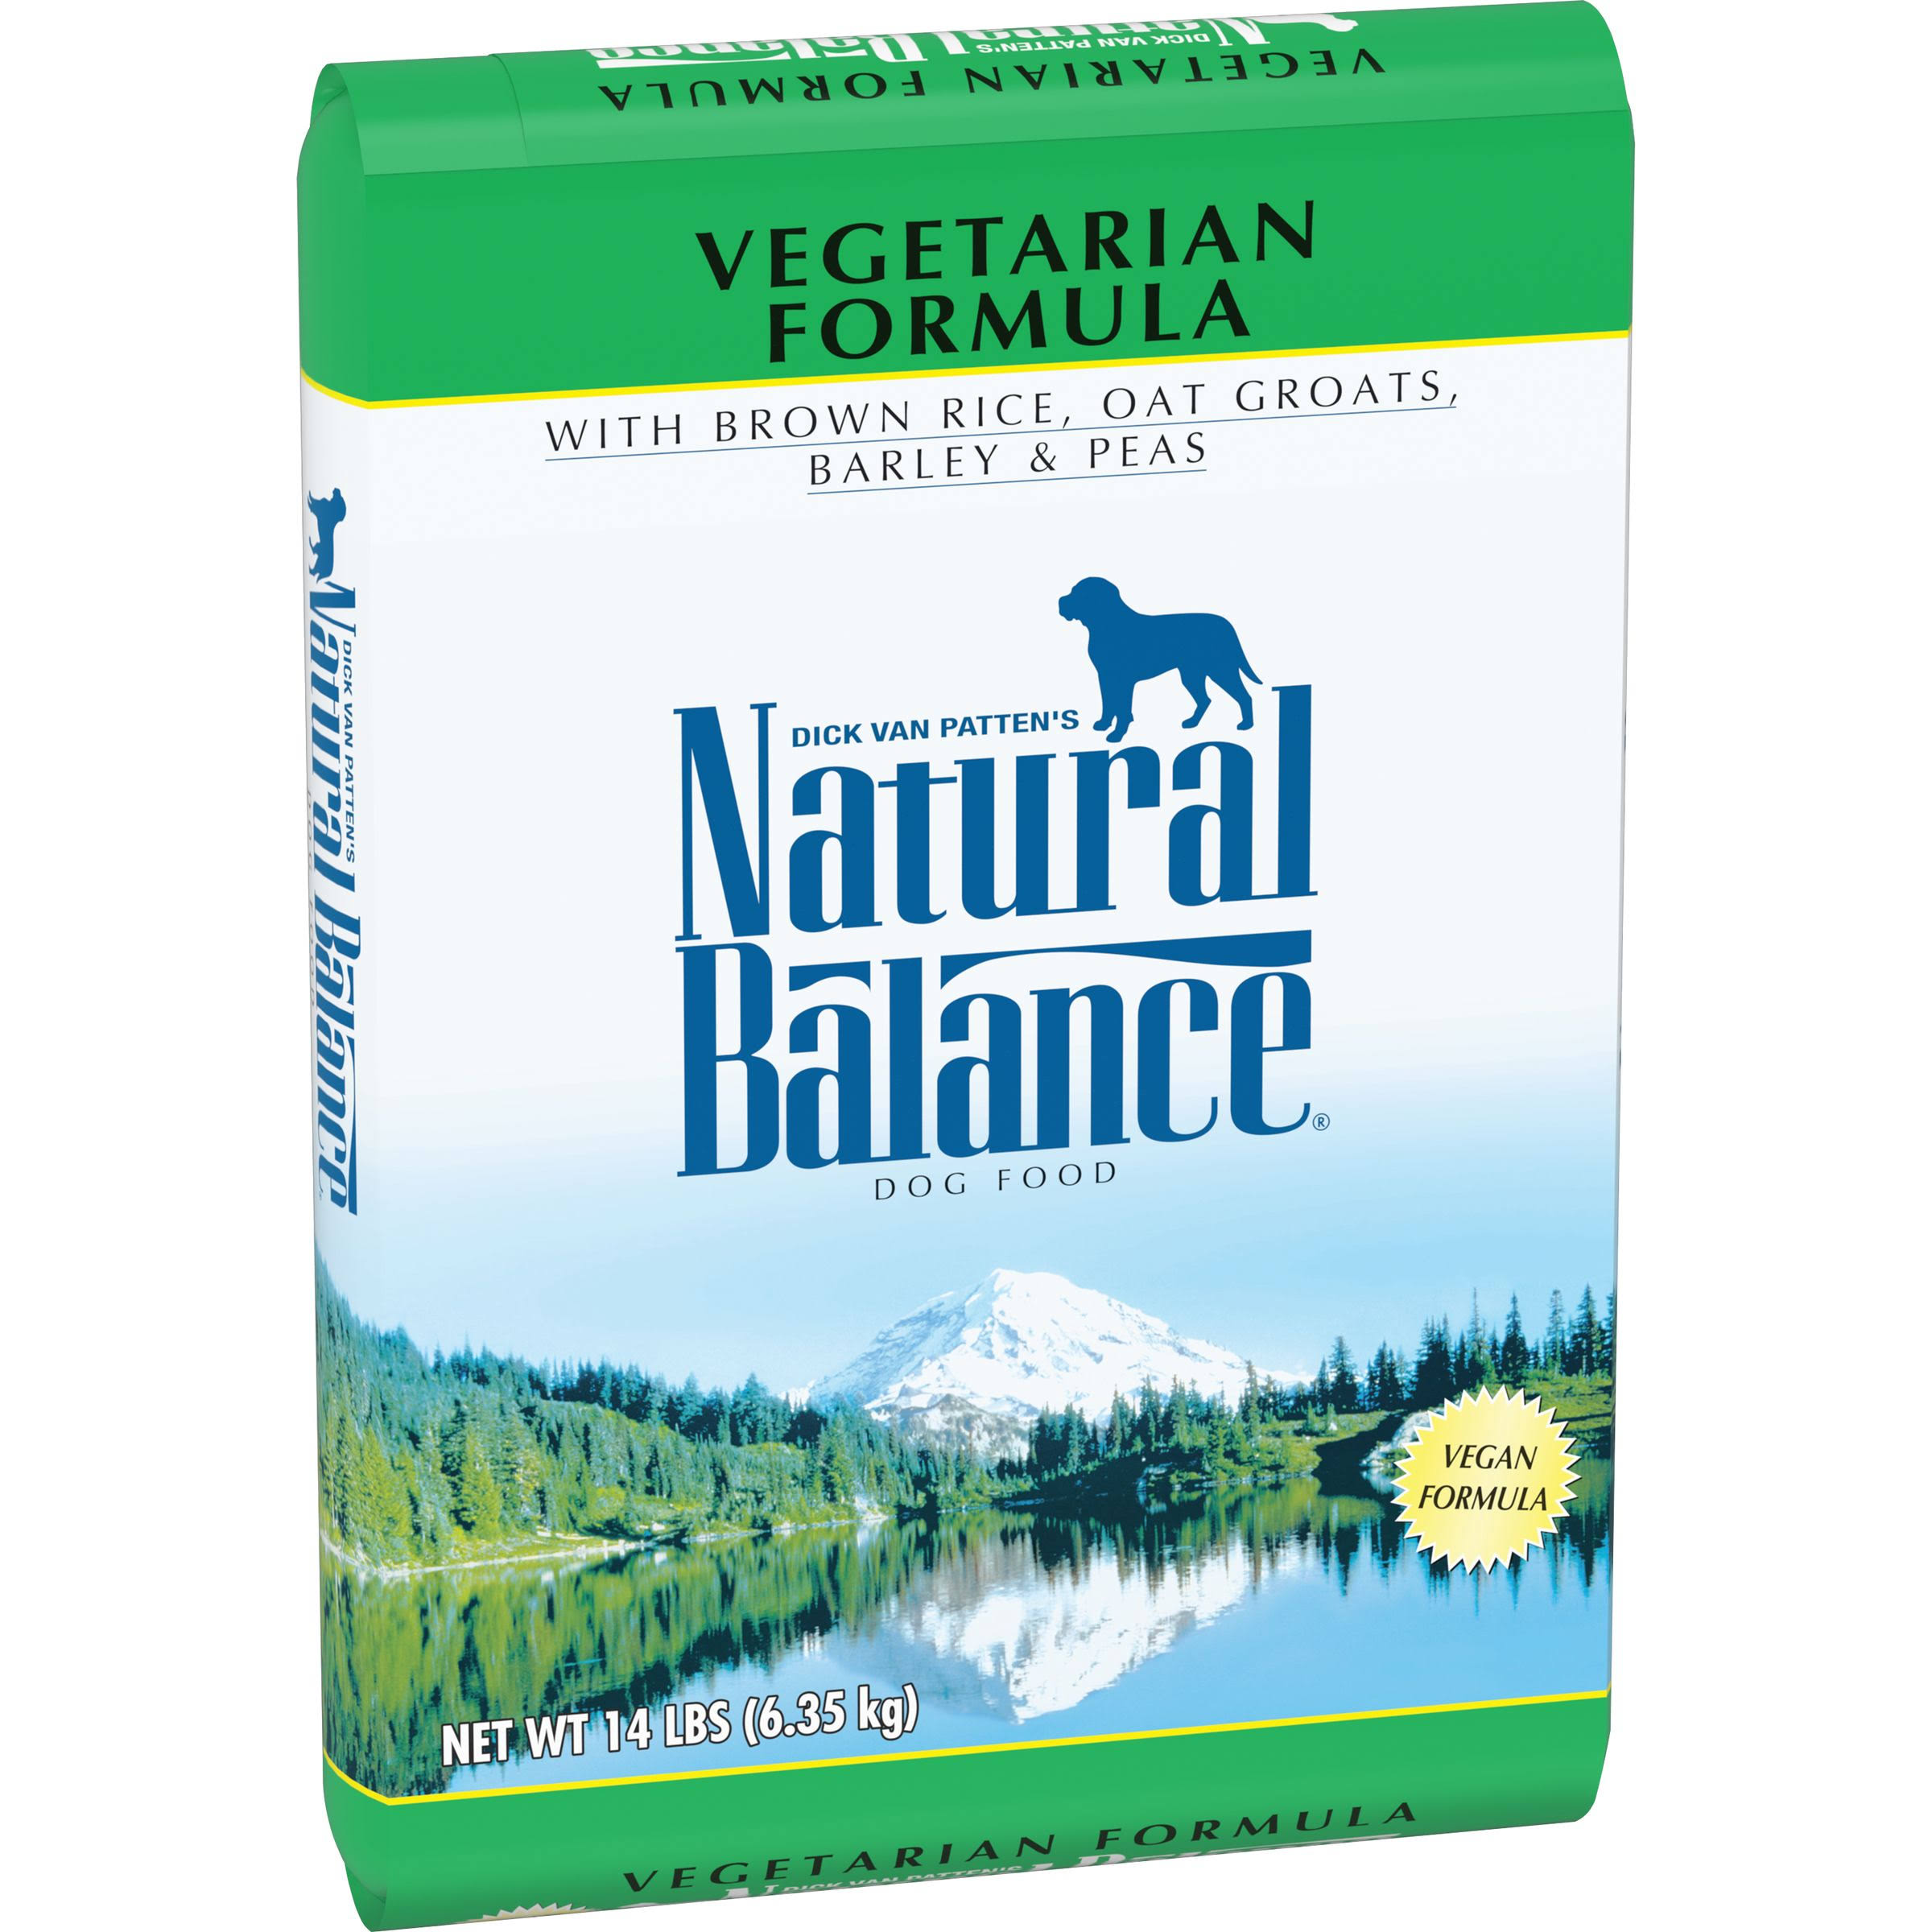 Natural Balance Dog Food - Vegetarian Formula